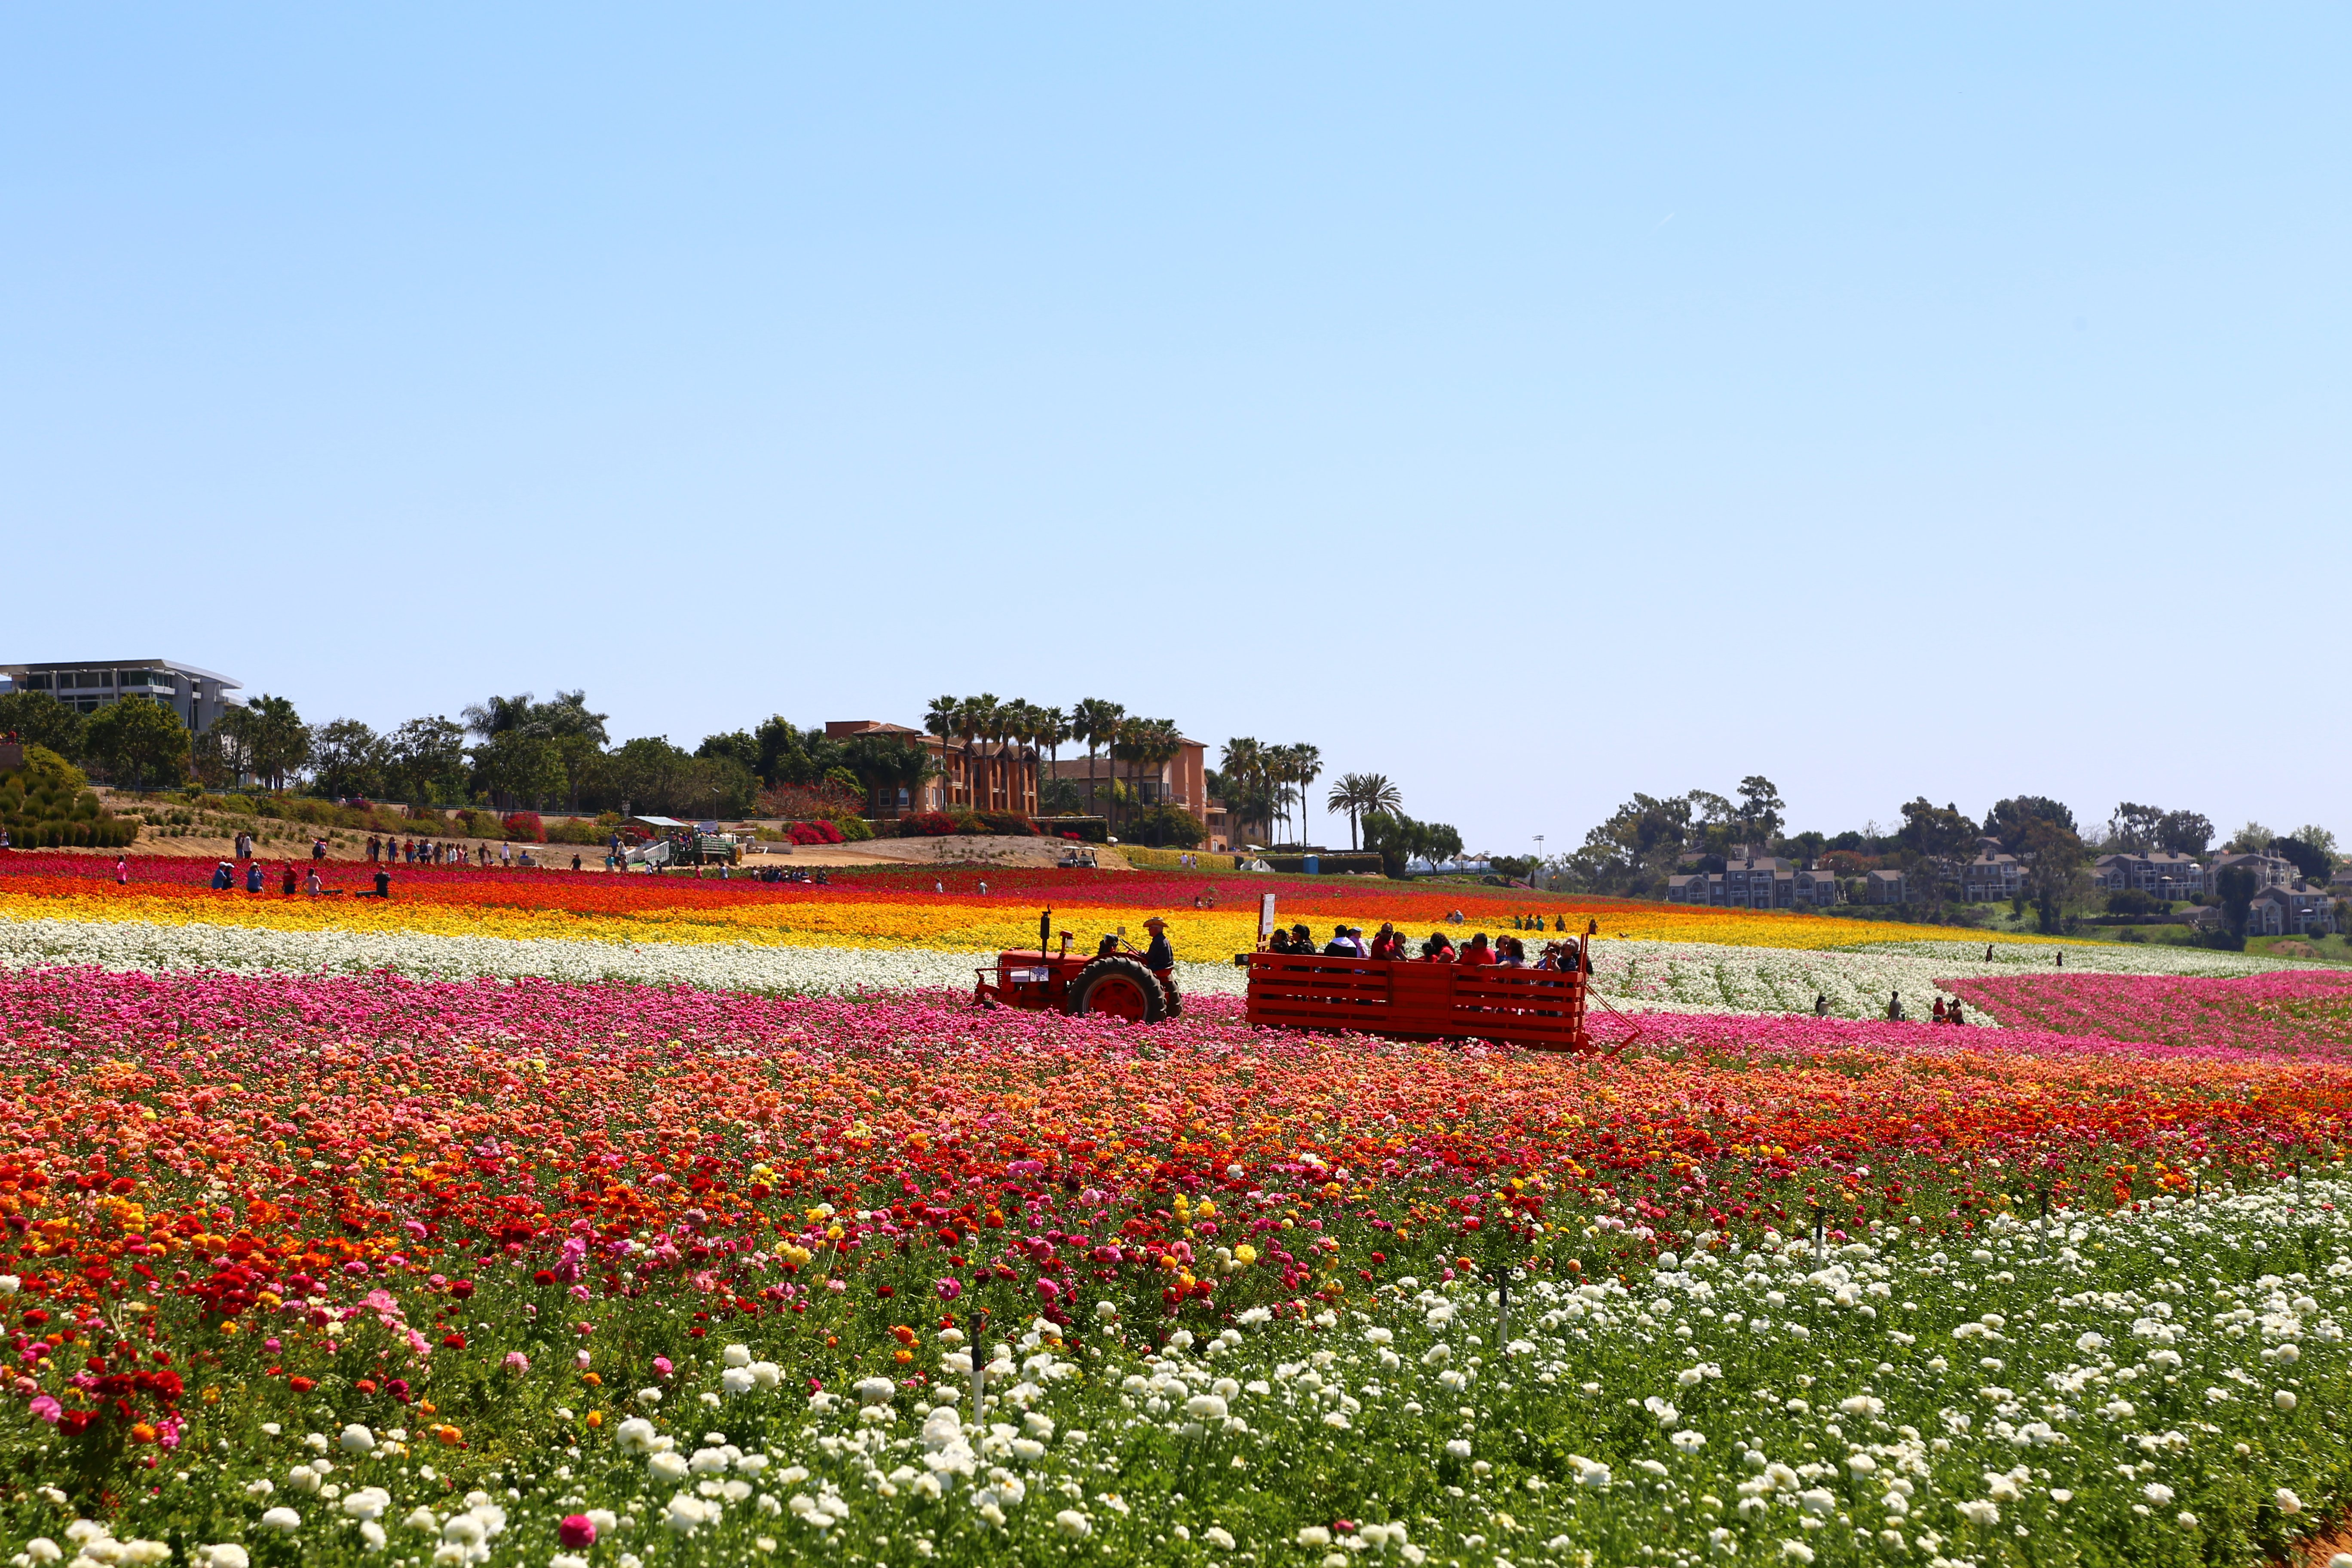 The antique tractor pulls a wagon full of guests through the ranunculus flowers.